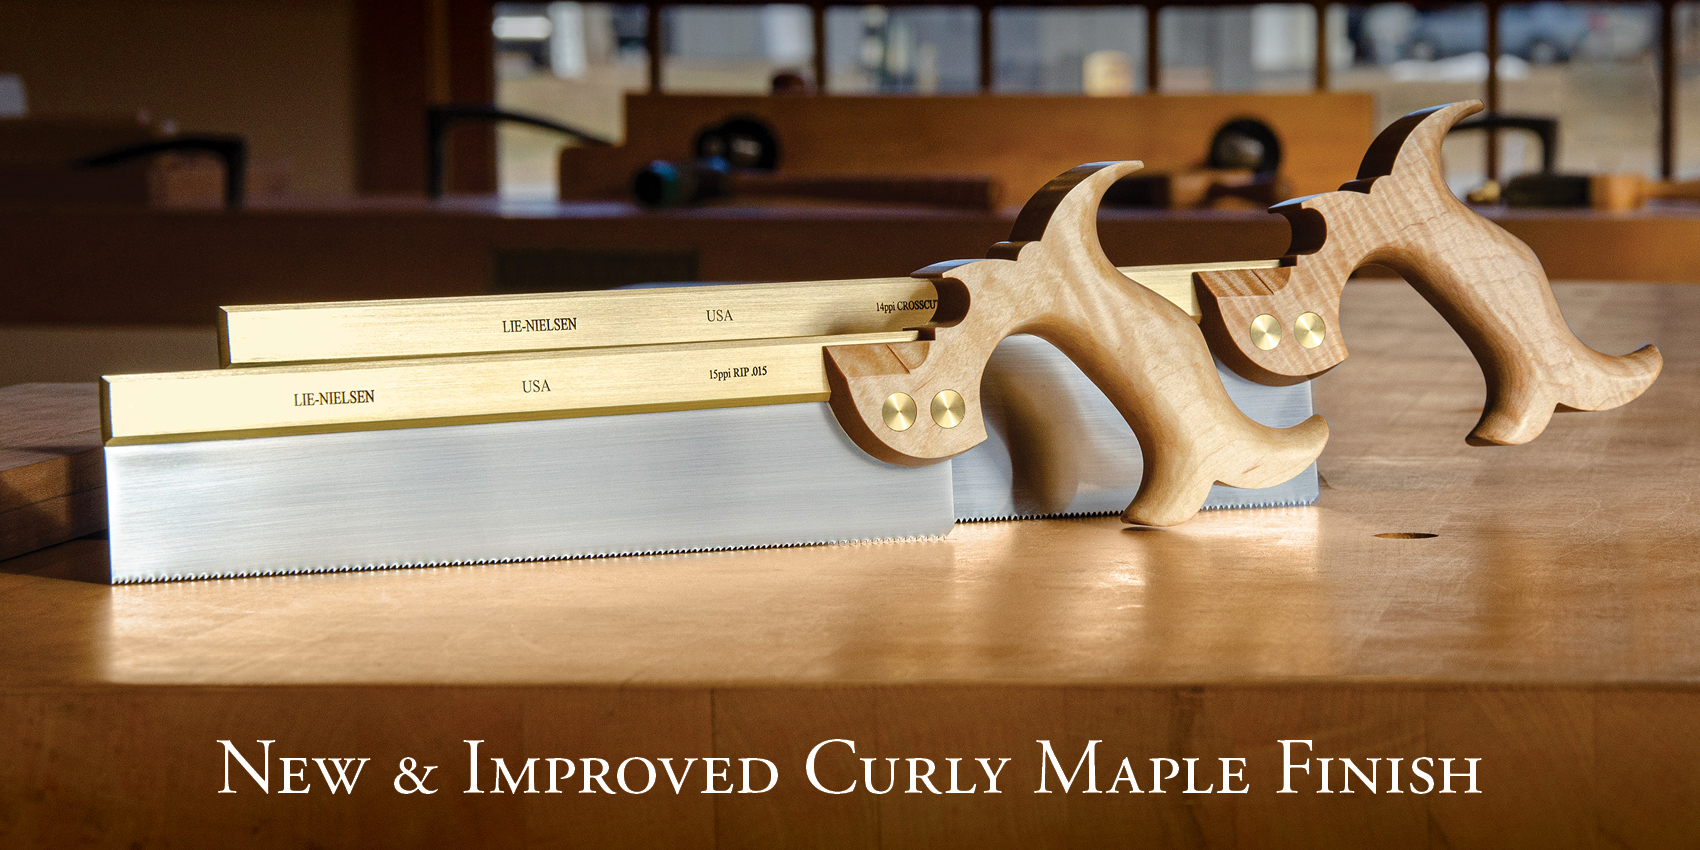 Our Curly Maple handles will soon have a new, improved finish